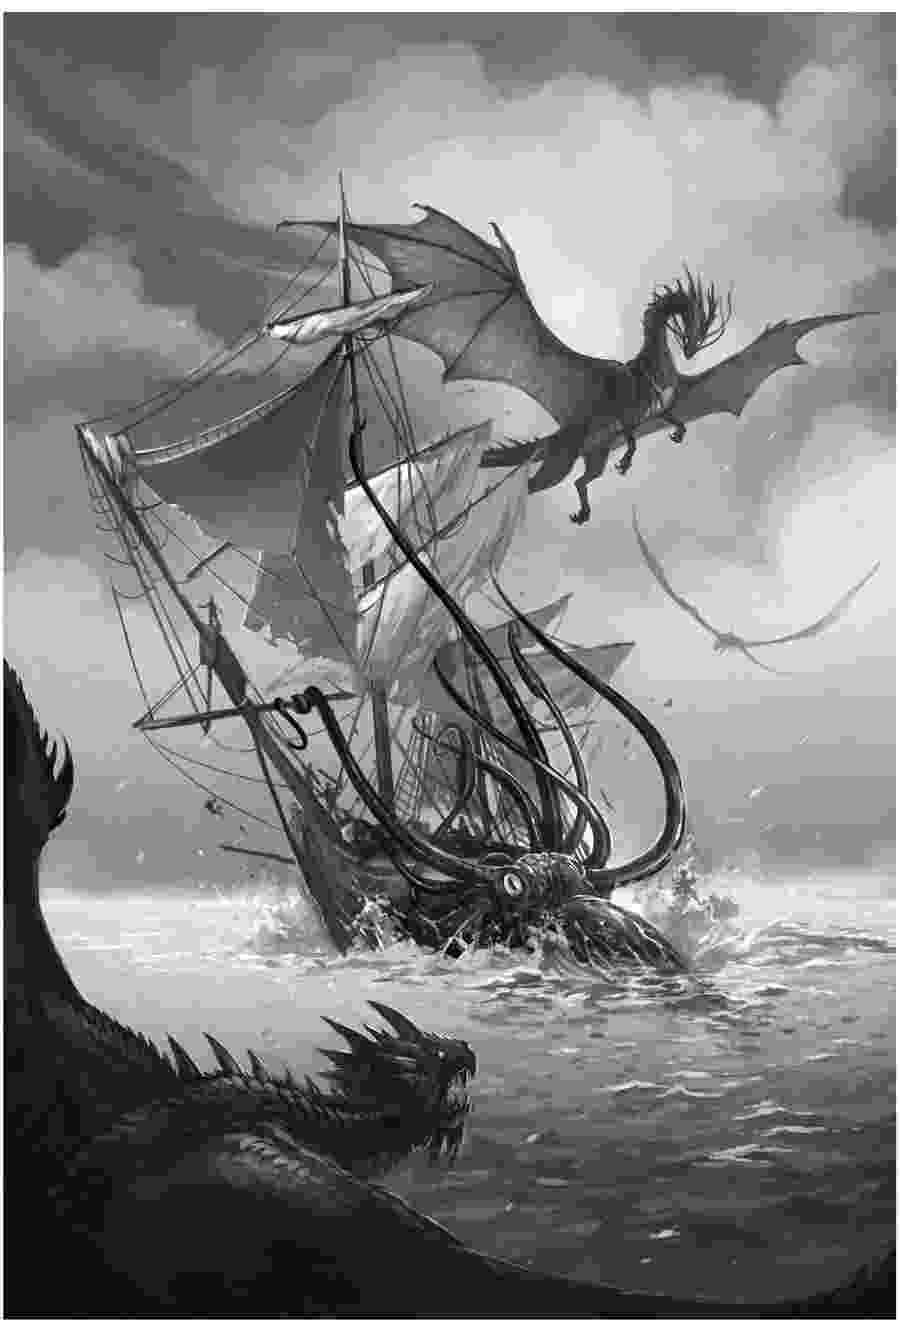 fantasy creatures mythical creatures dragon love mythical creatures fantasy creatures